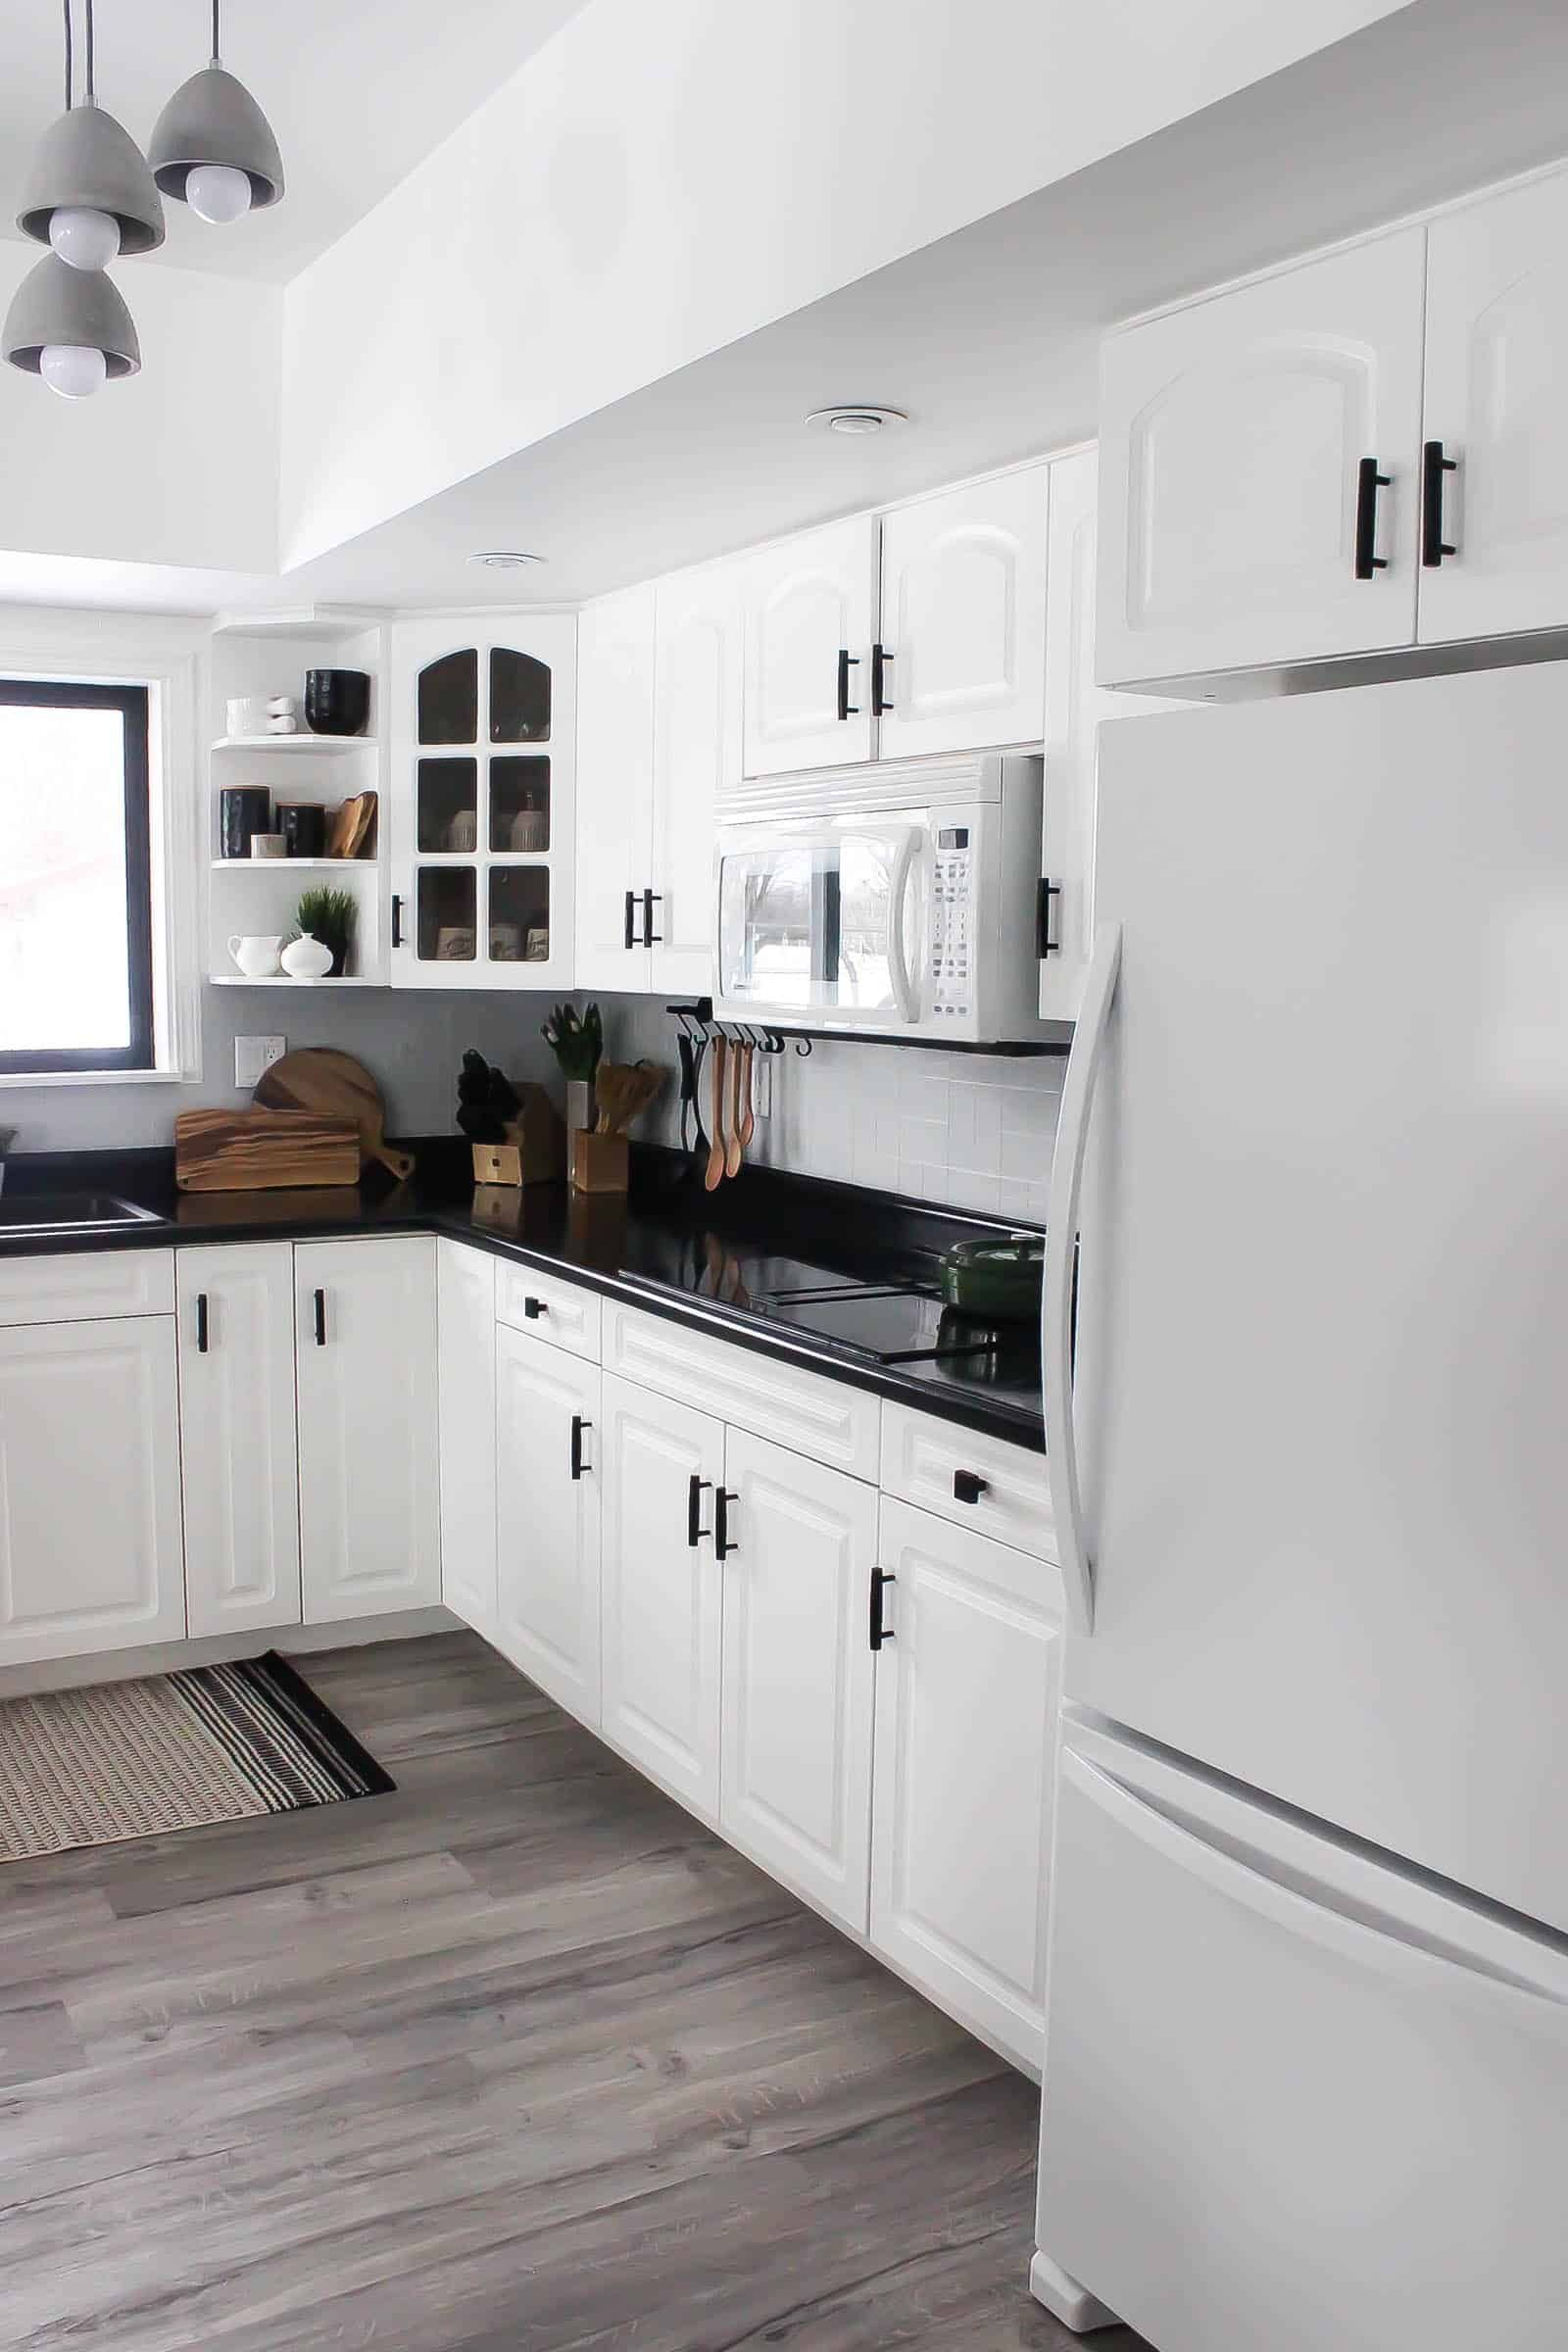 Our Weekend Renovation A New Modern Kitchen Love Create Celebrate In 2020 Interior Design Kitchen Black Countertops White Cabinets Black Countertops